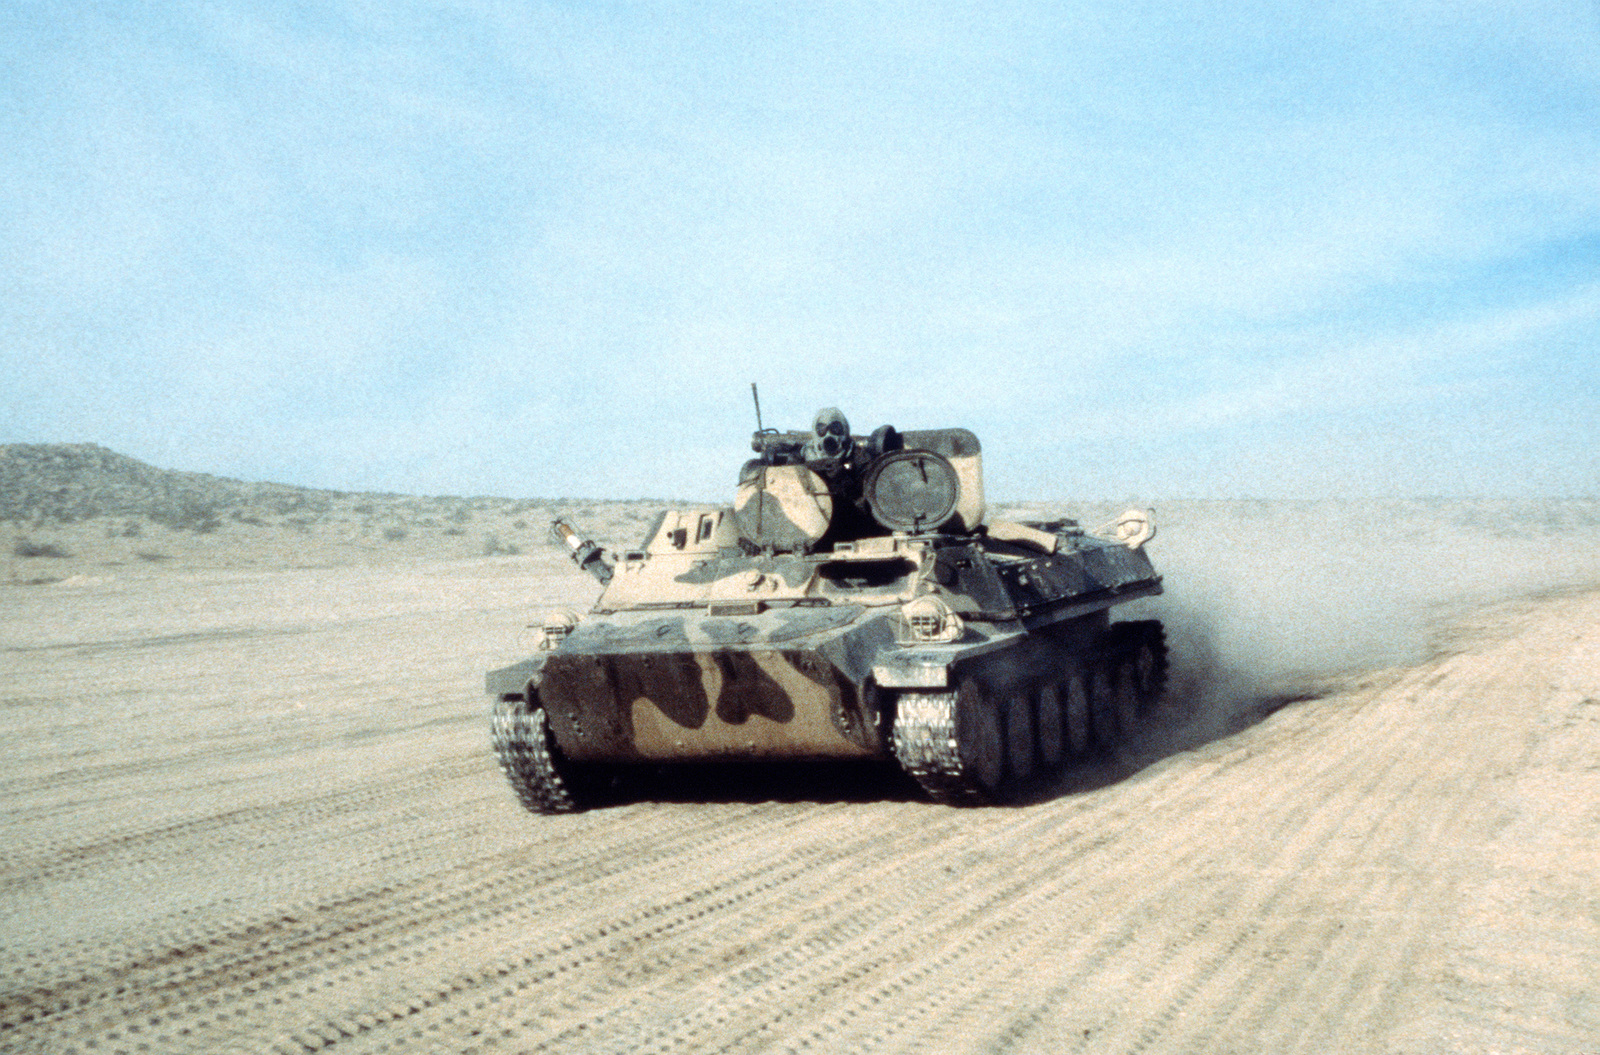 A Soviet MT-LB multipurpose tracked vehicle moves along a dirt road during an exercise at the National Training Center.  The vehicle is used by the 177th Armored Brigade in their role as an opposing force